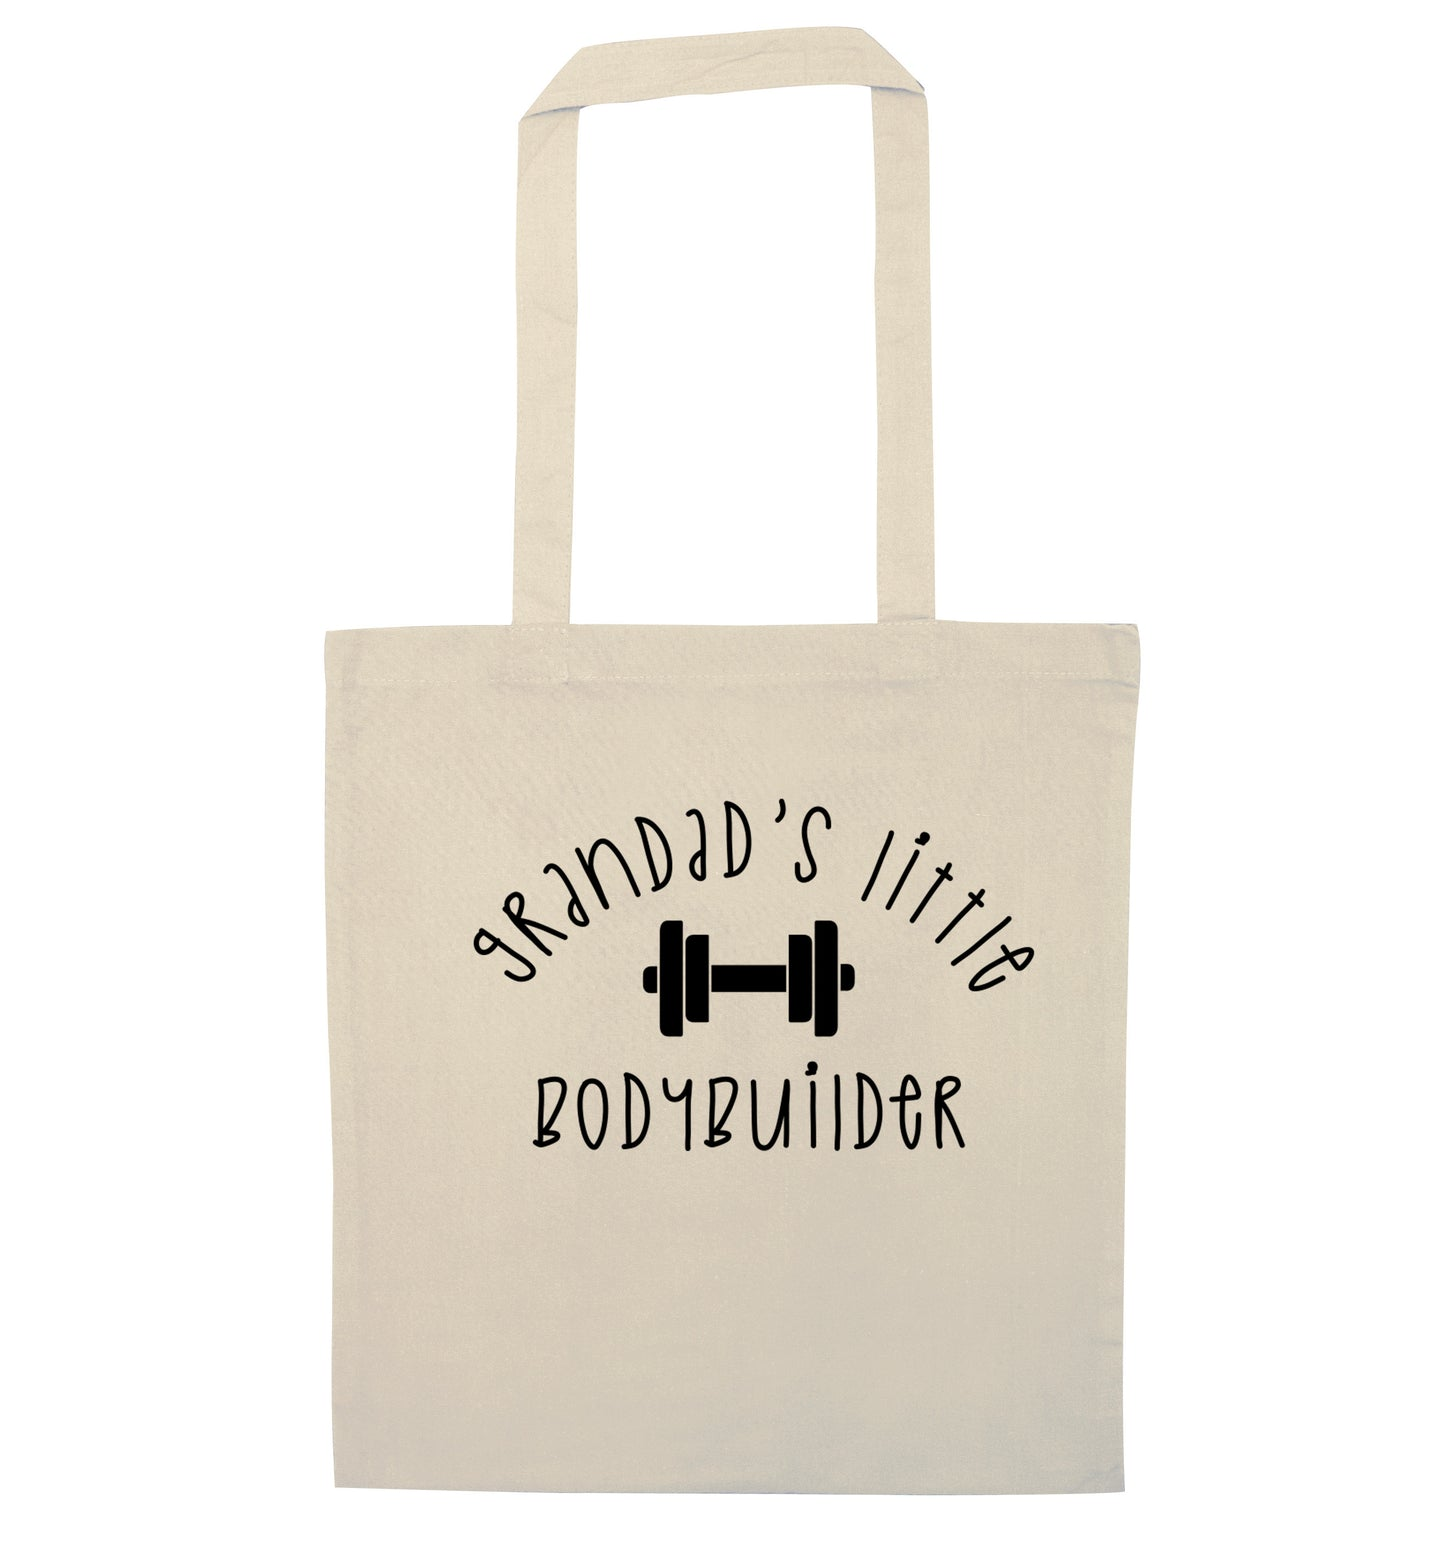 Grandad's little bodybuilder natural tote bag